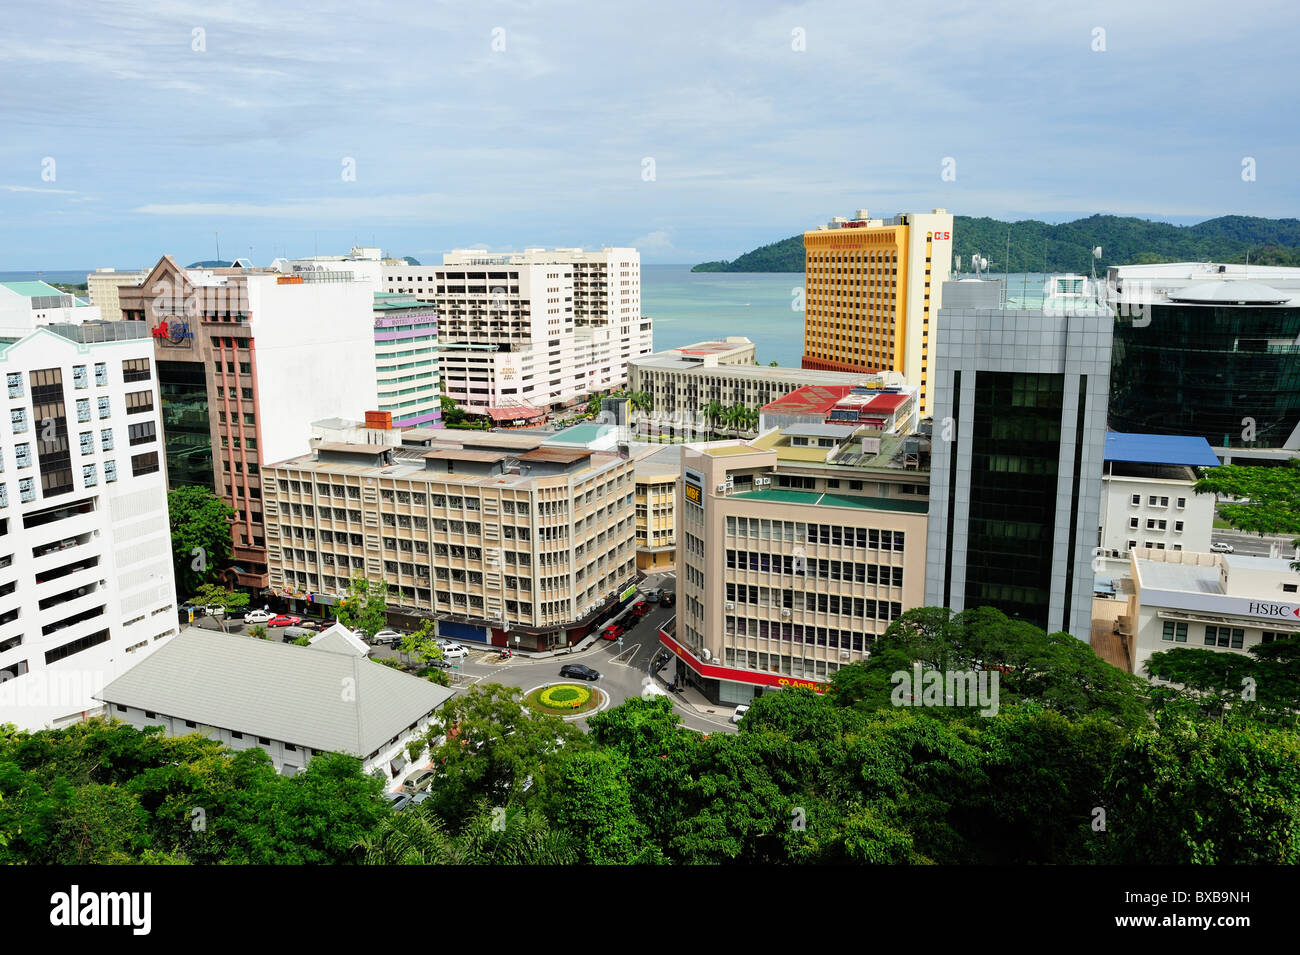 City view from the observatory on Signal Hill, Kota Kinabalu, Sabah - Stock Image